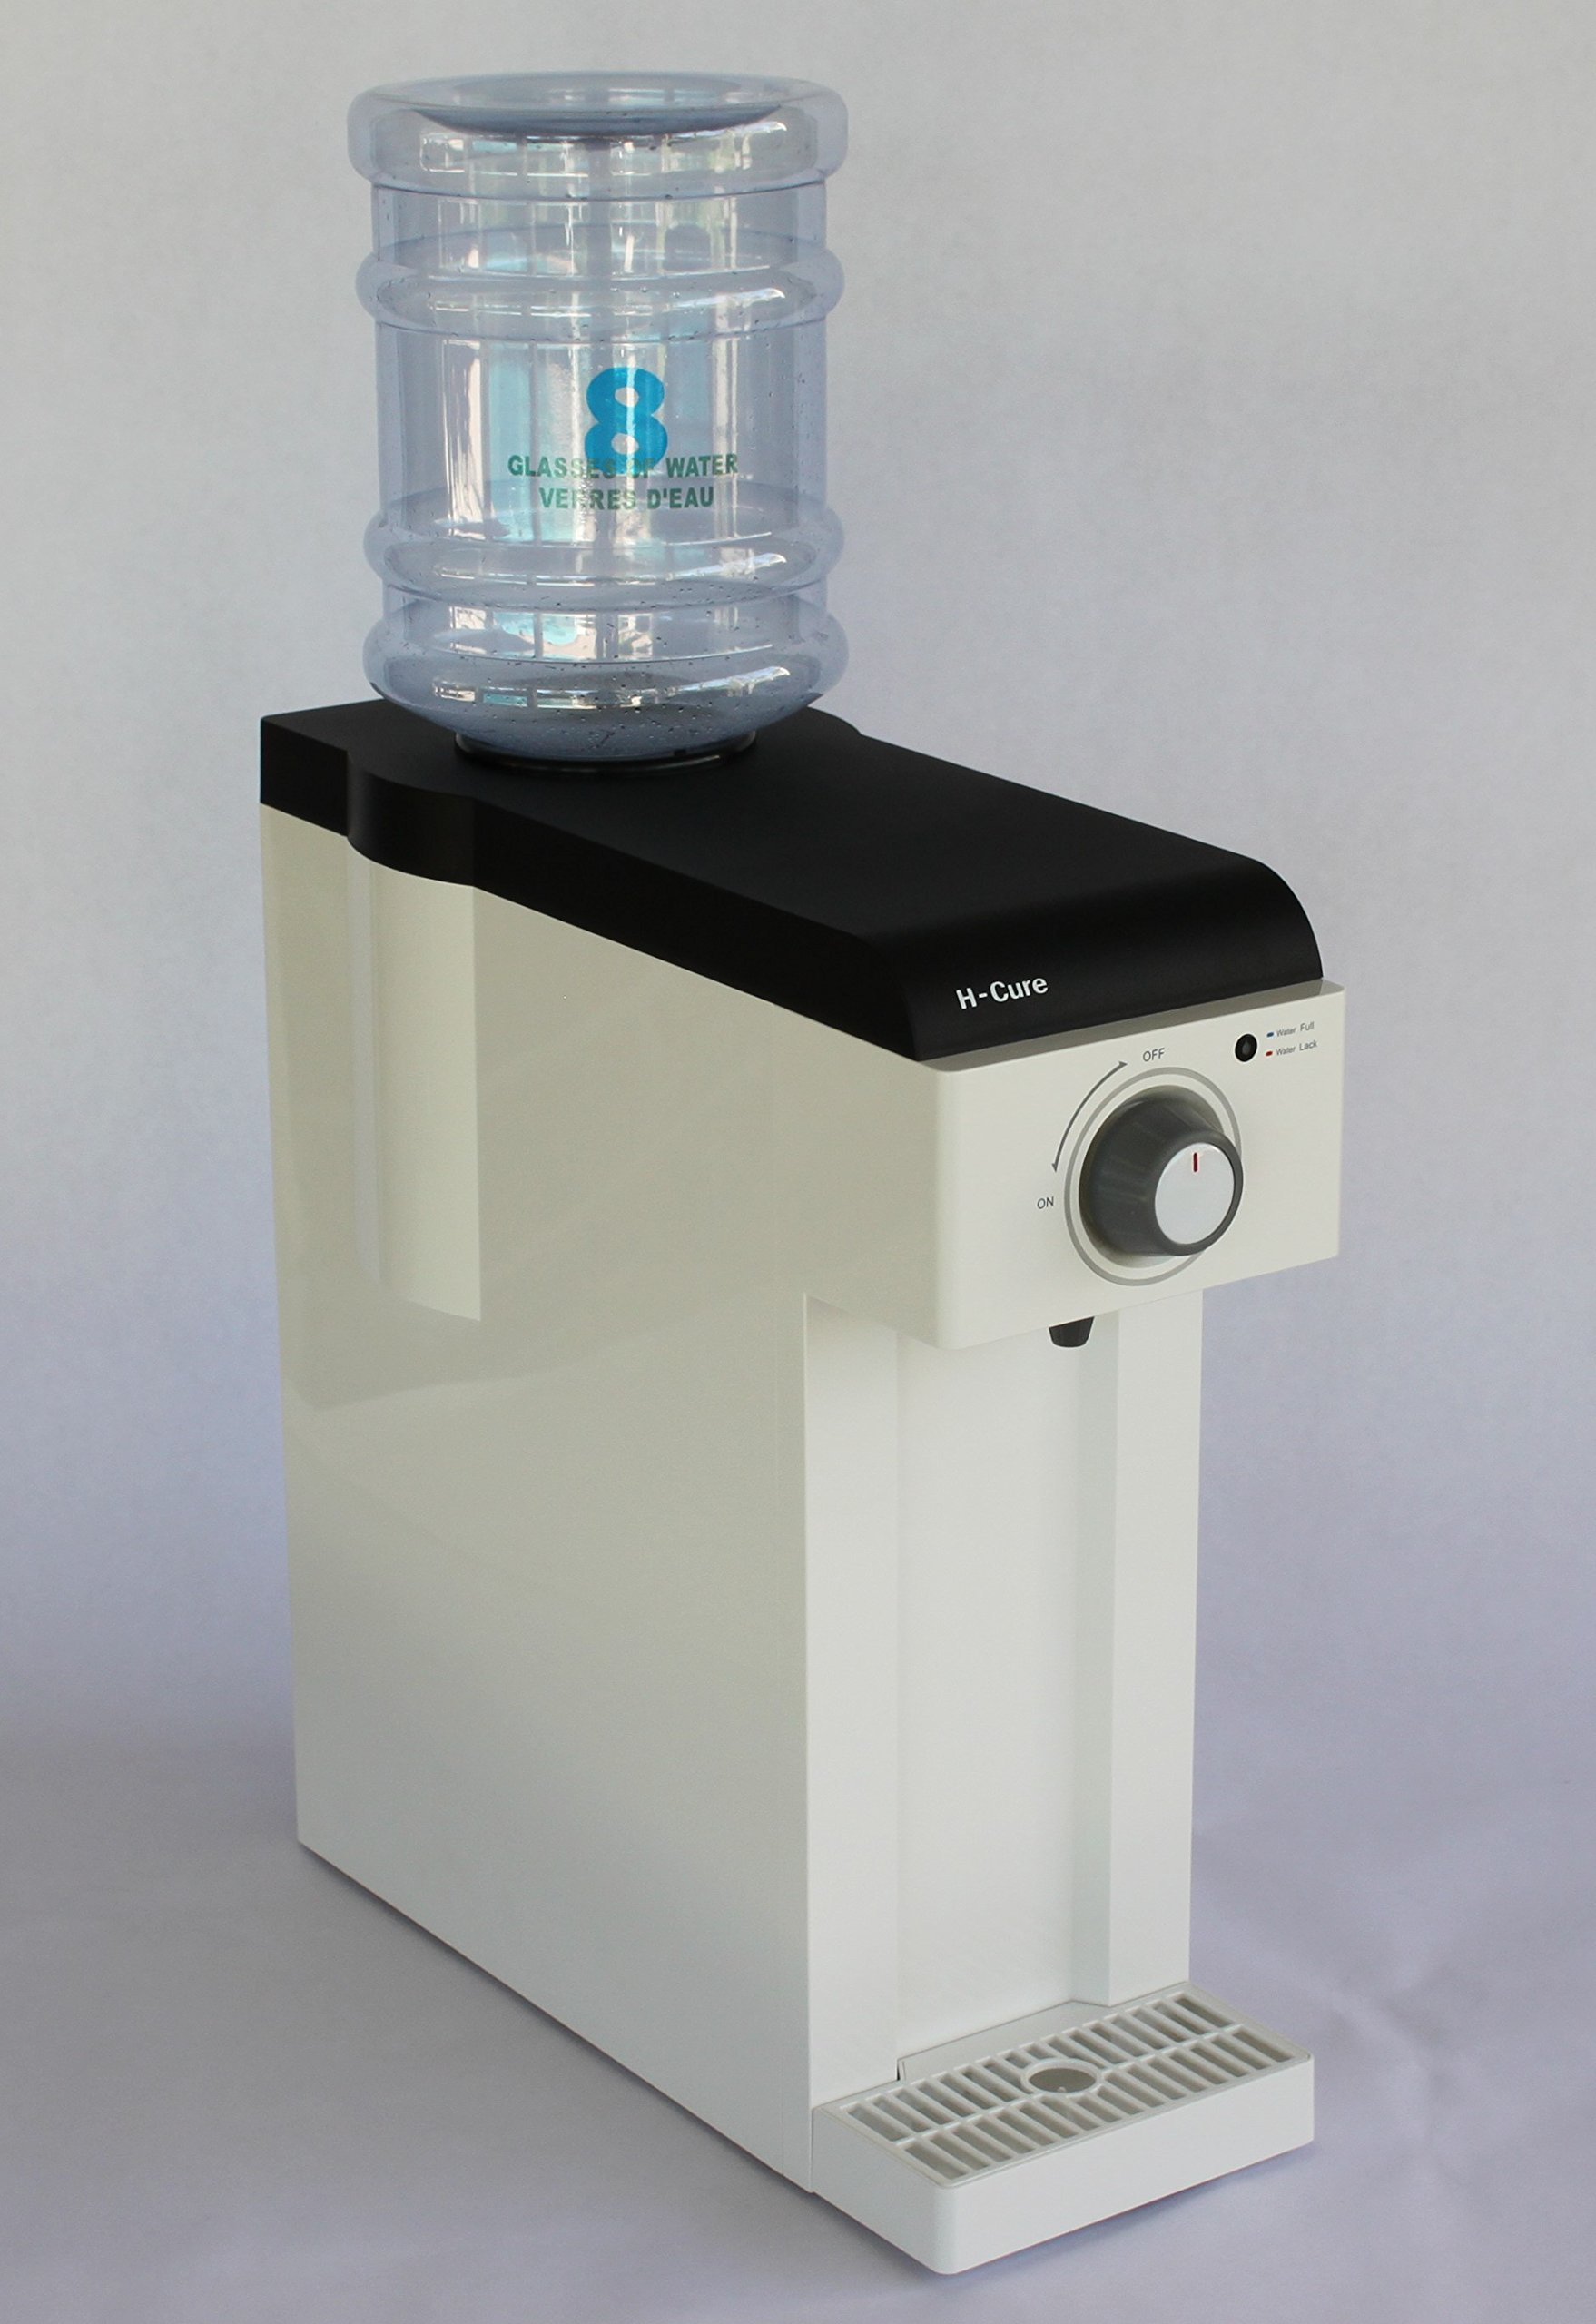 H-Cure Hydrogen Water Generator by Zontos for 1.2 to 1.6 ppm Infused Diatomic Hydrogen (H2) in your Drinking Water using Hydrogen Direct Module Technology